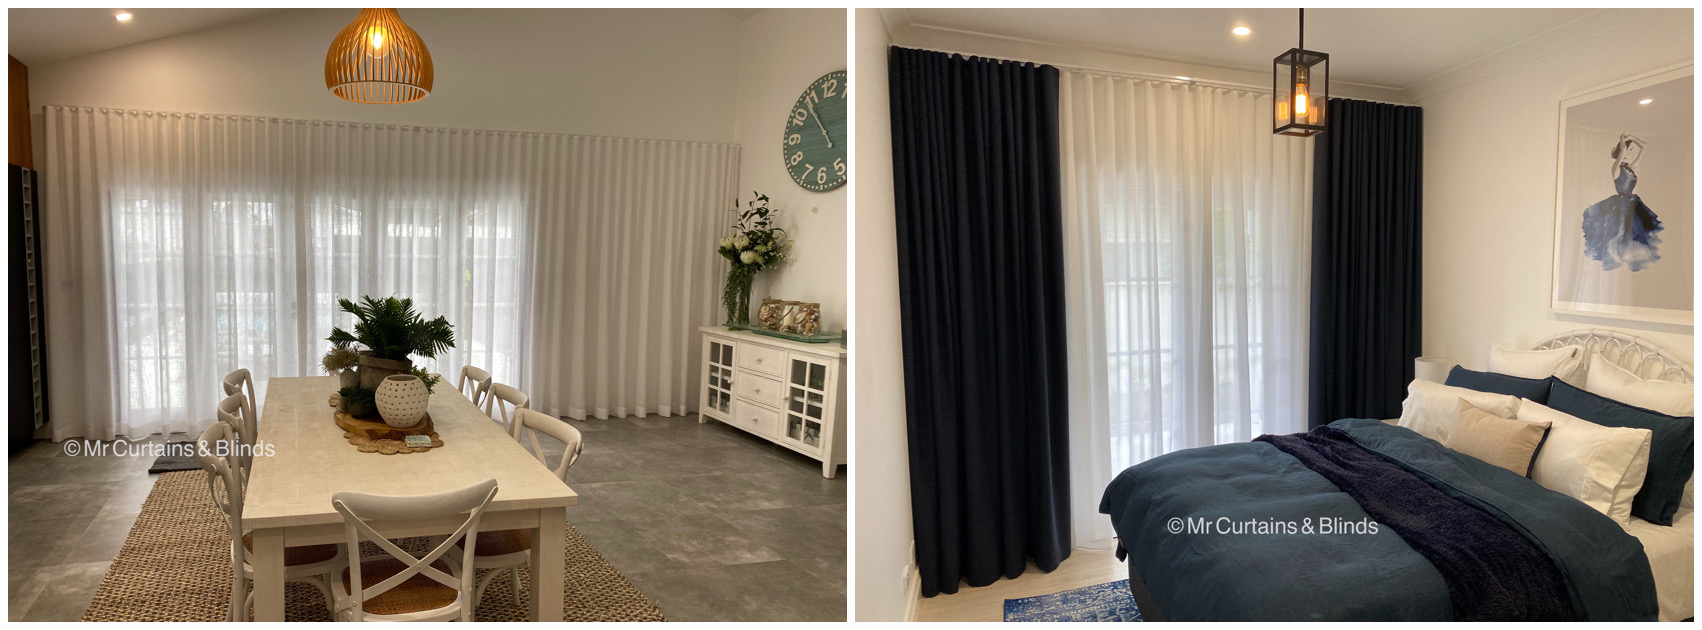 Sfold Sheer and Lined Curtains Mr Curtains and Blinds Central Coast